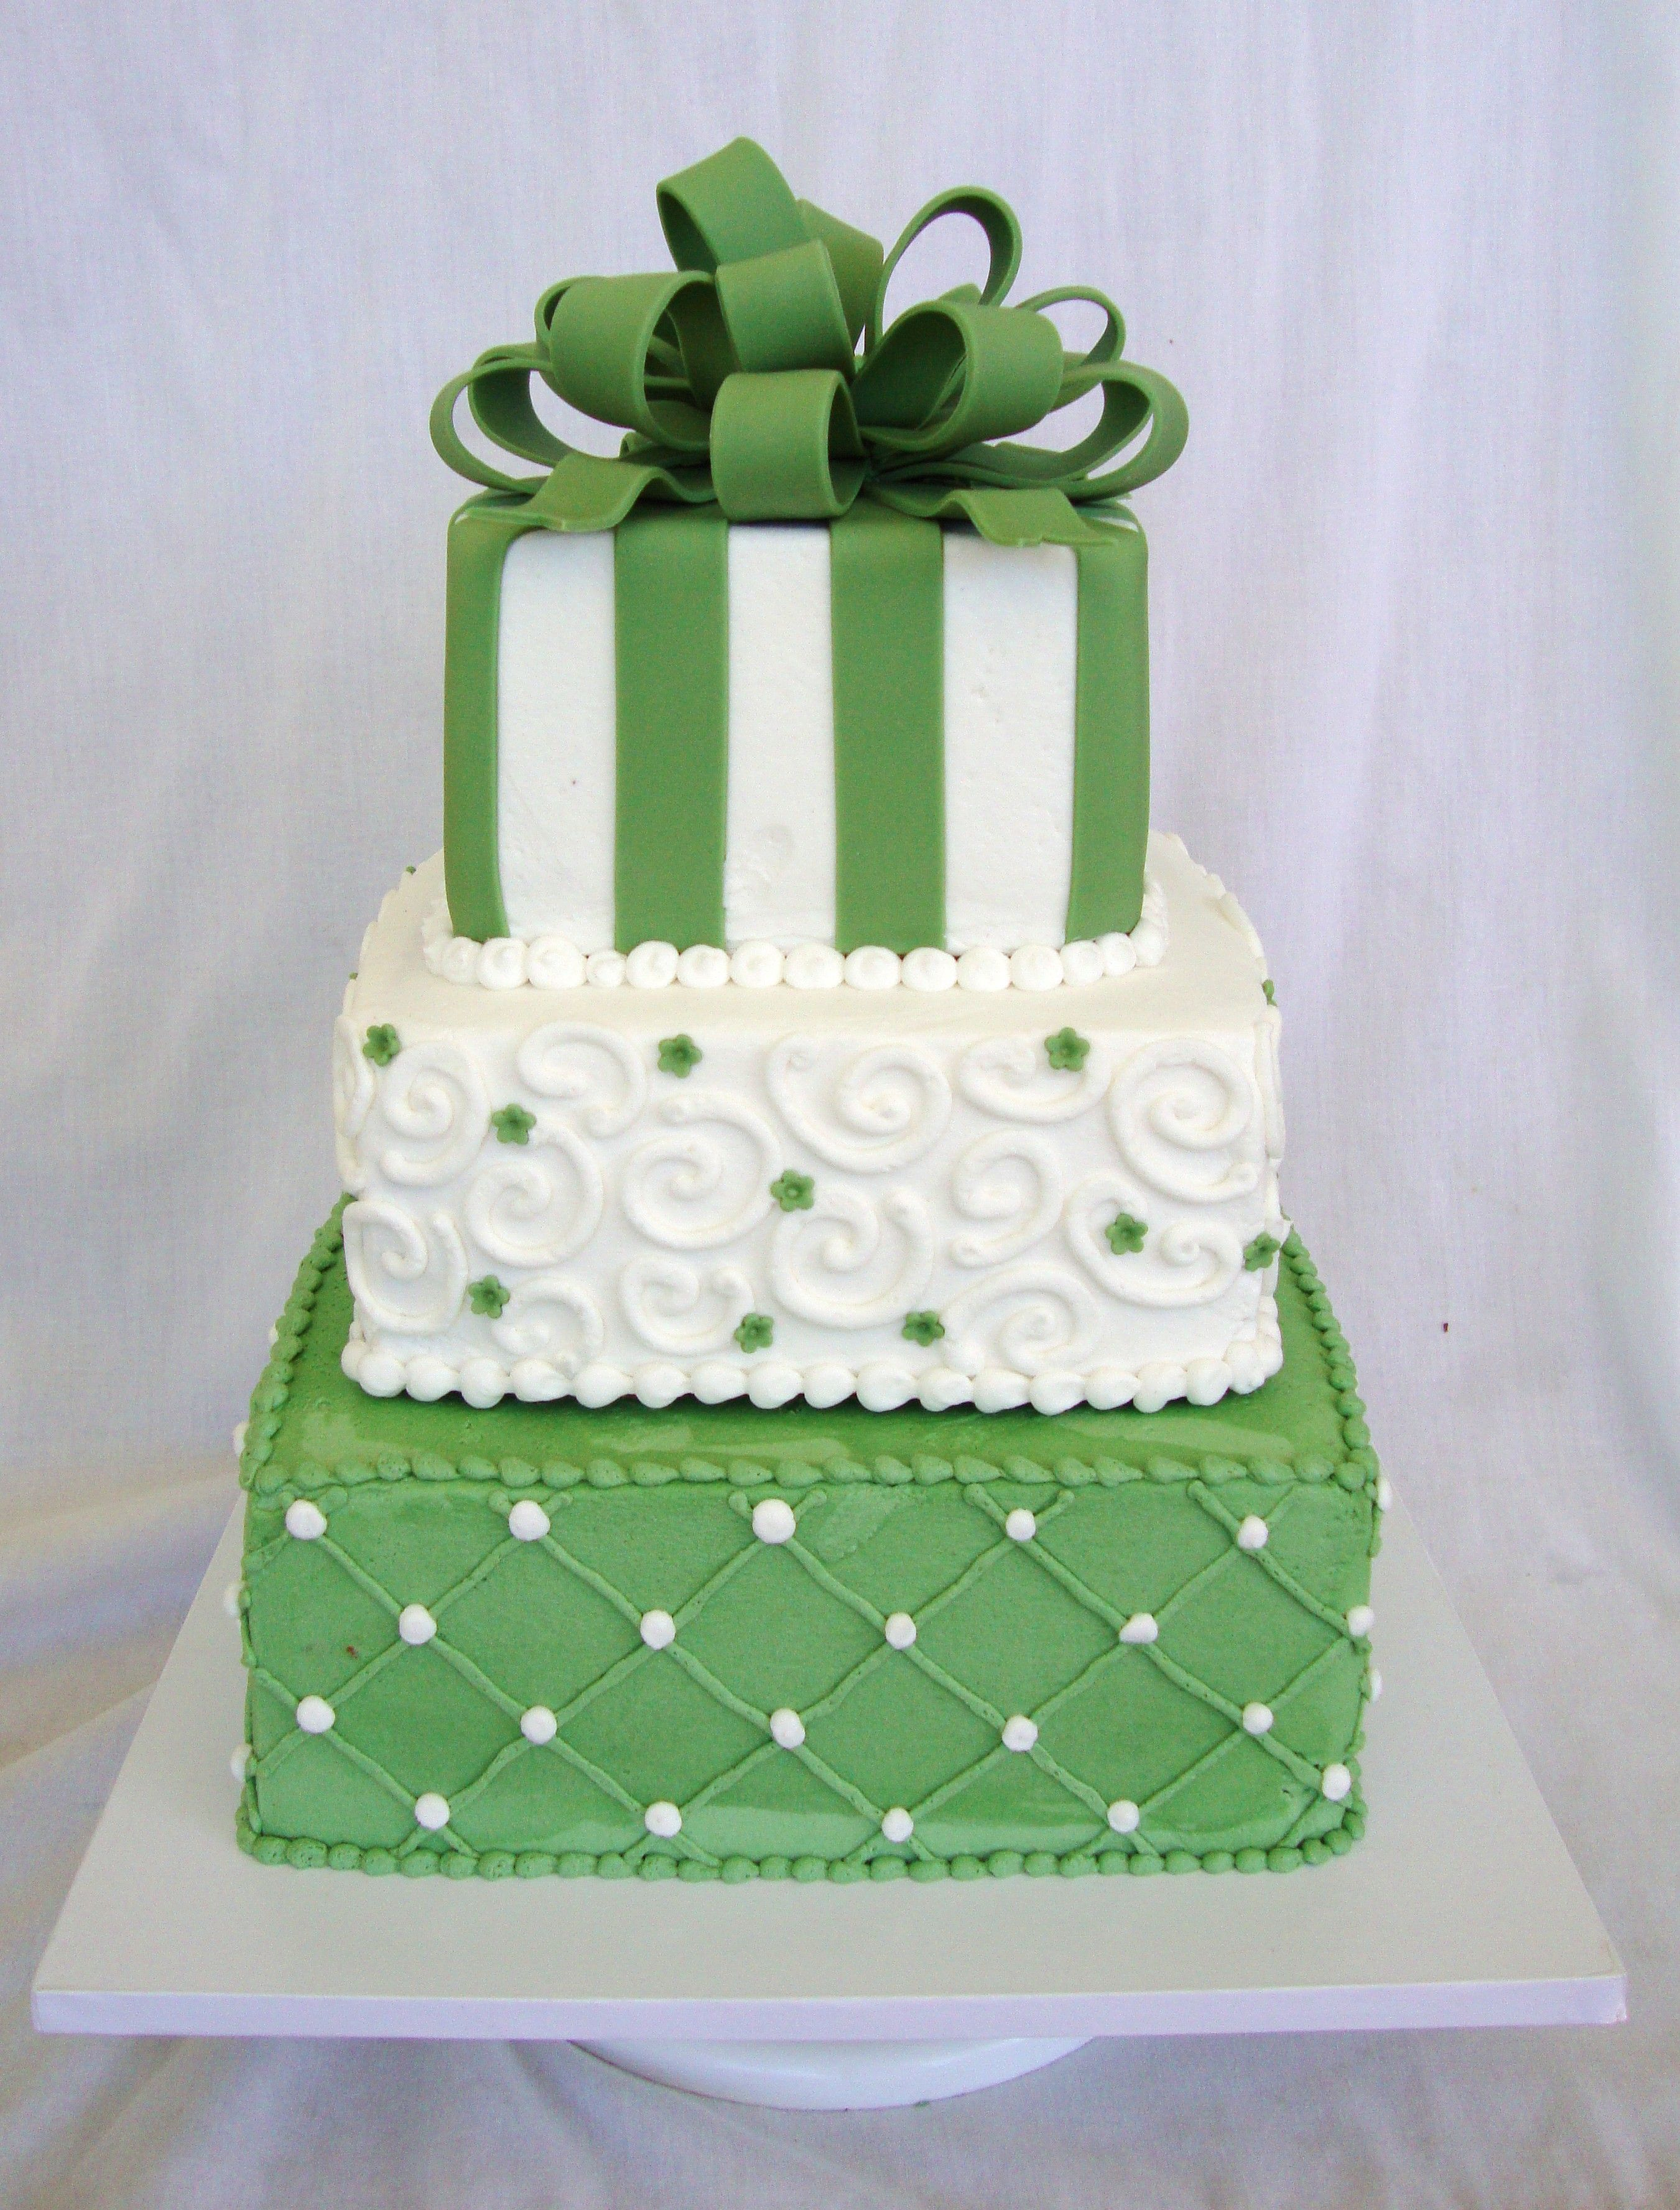 Fern Green Amp White Square Wedding Cake This Is A 6 8 10